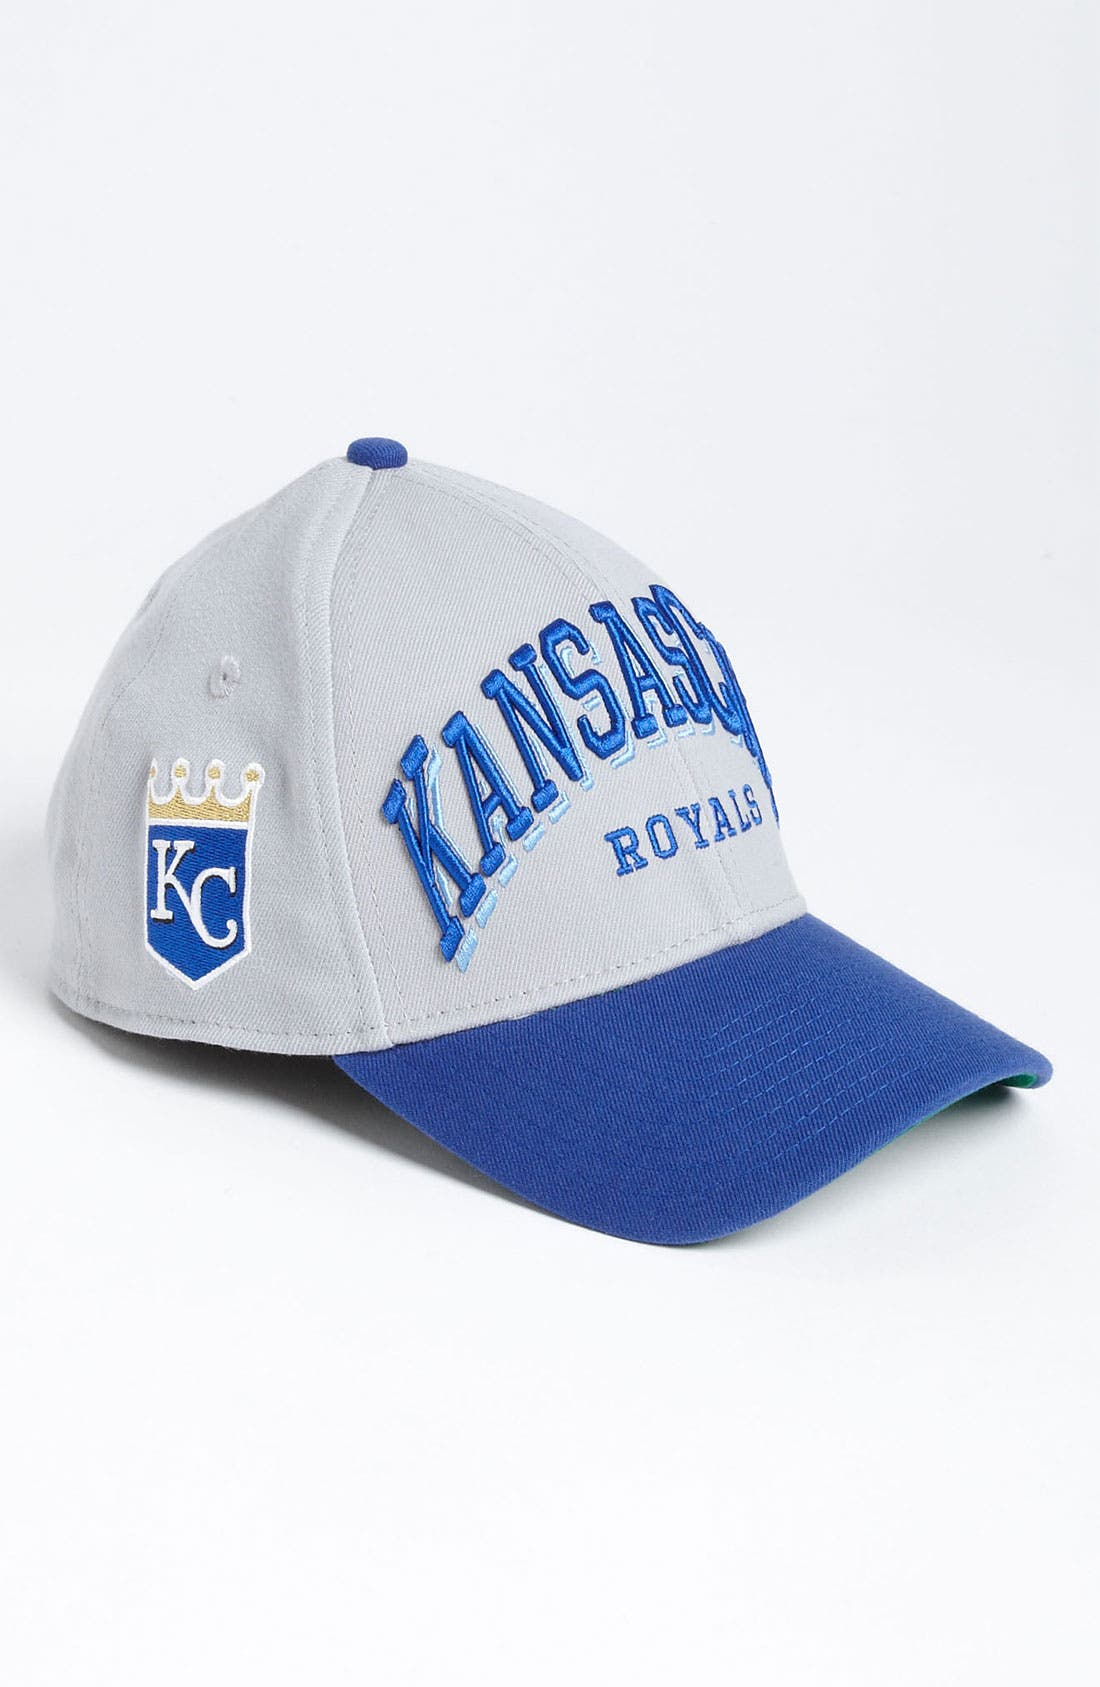 Alternate Image 2  - New Era Cap 'Kansas City Royals - Arch Mark' Fitted Baseball Cap